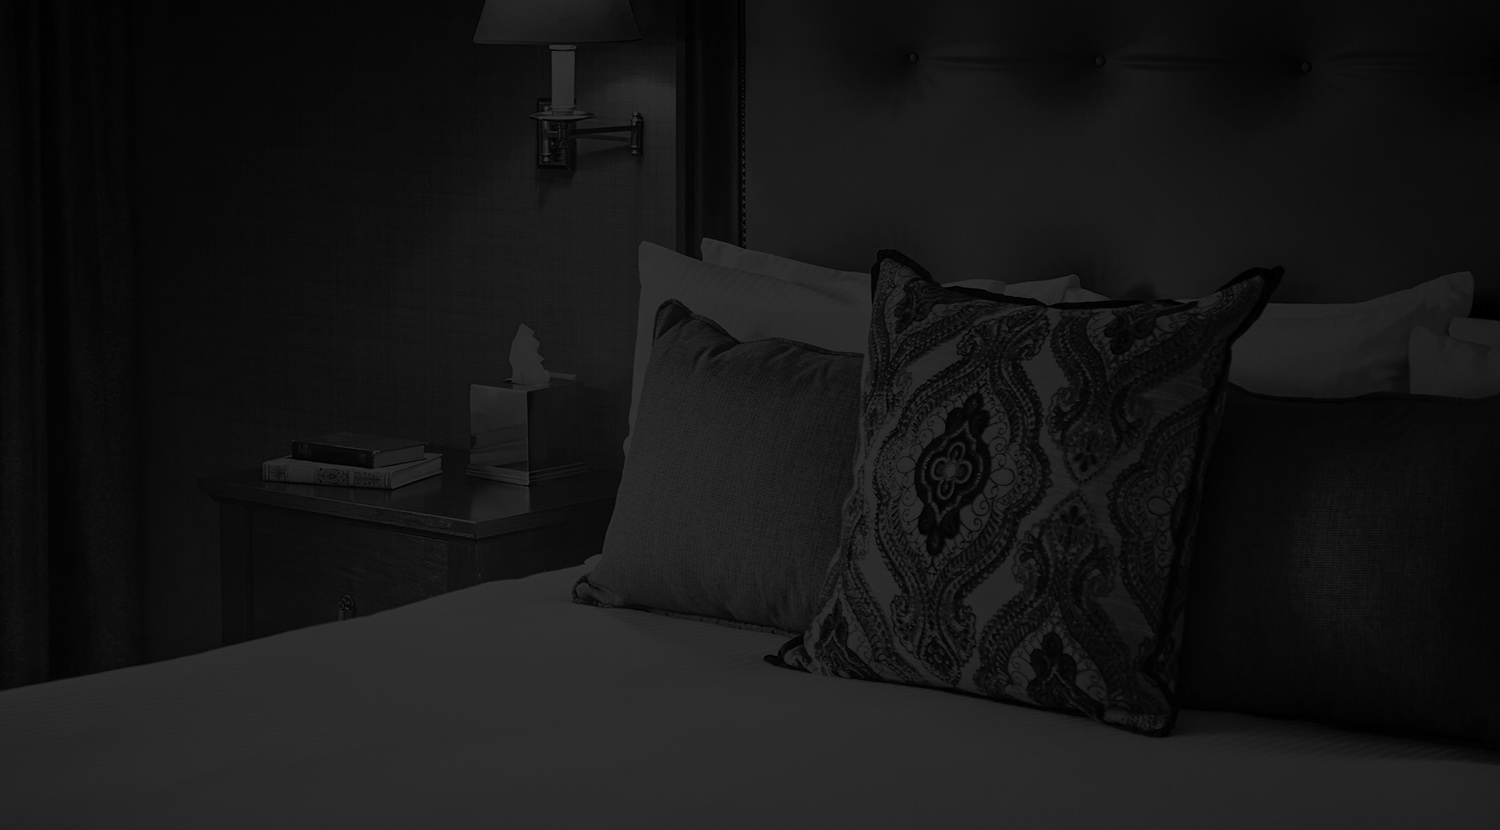 black and white image of a guest bed